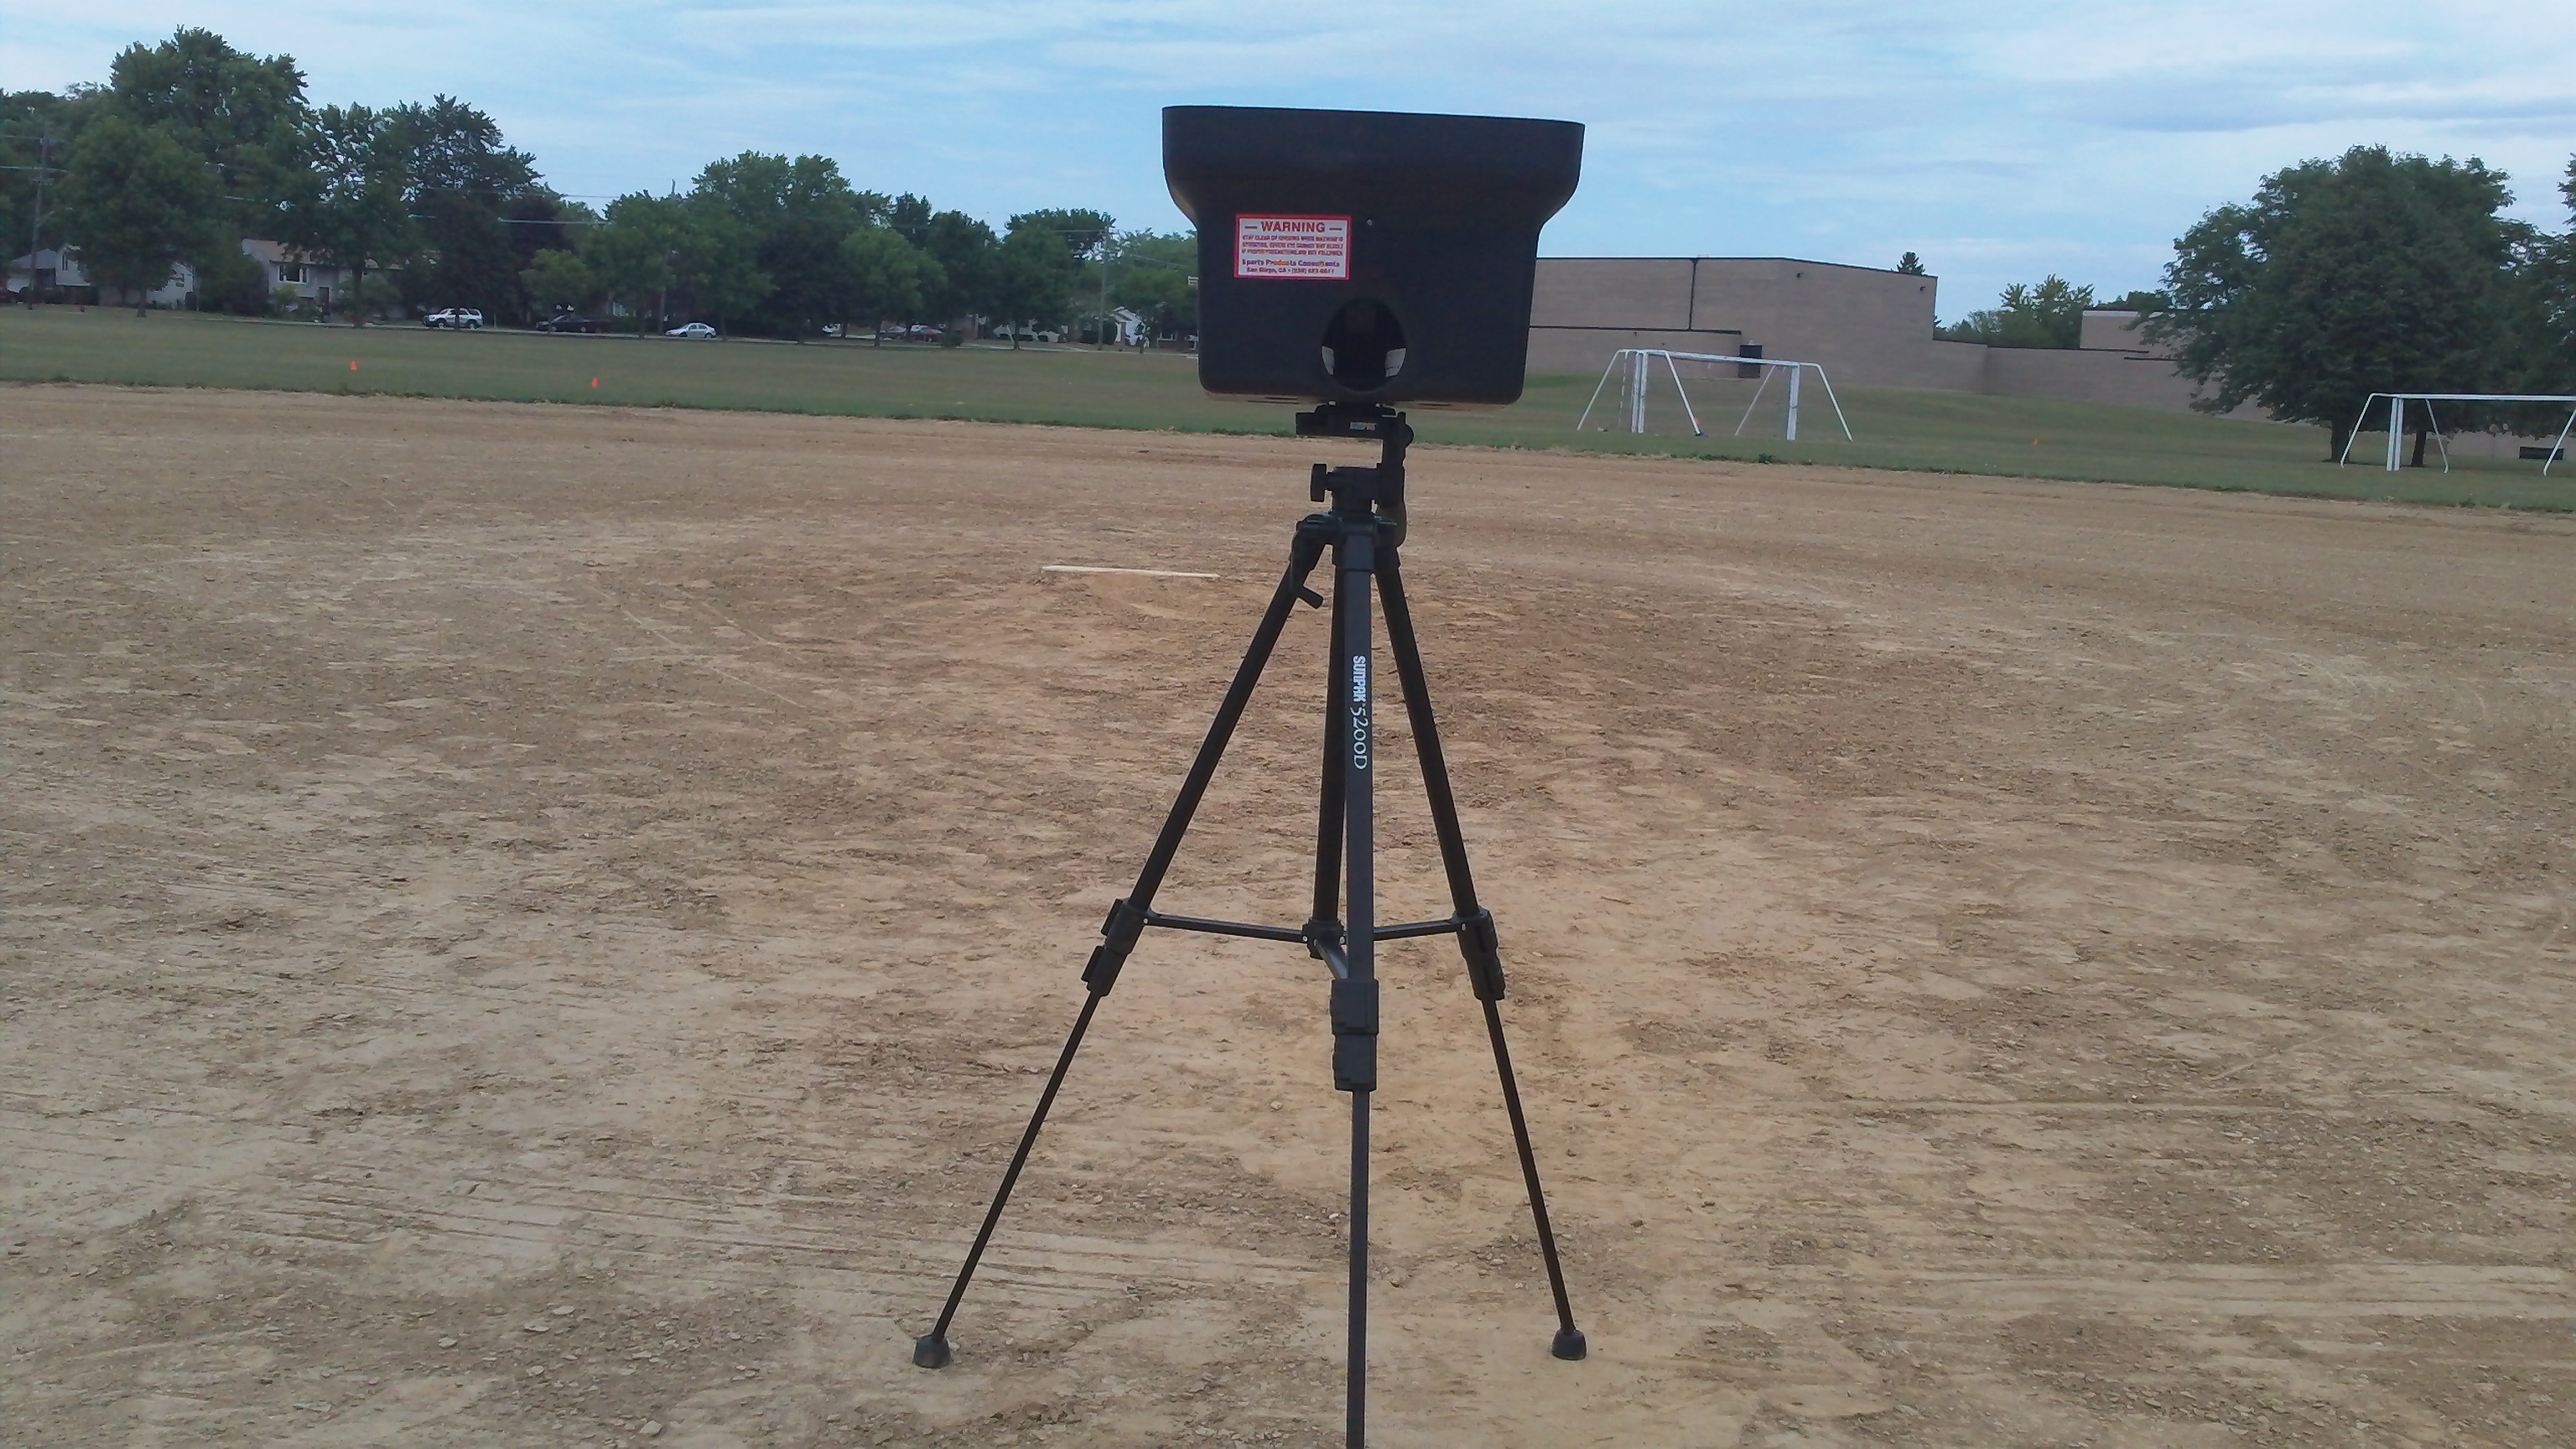 Personal Pitcher pitching machine